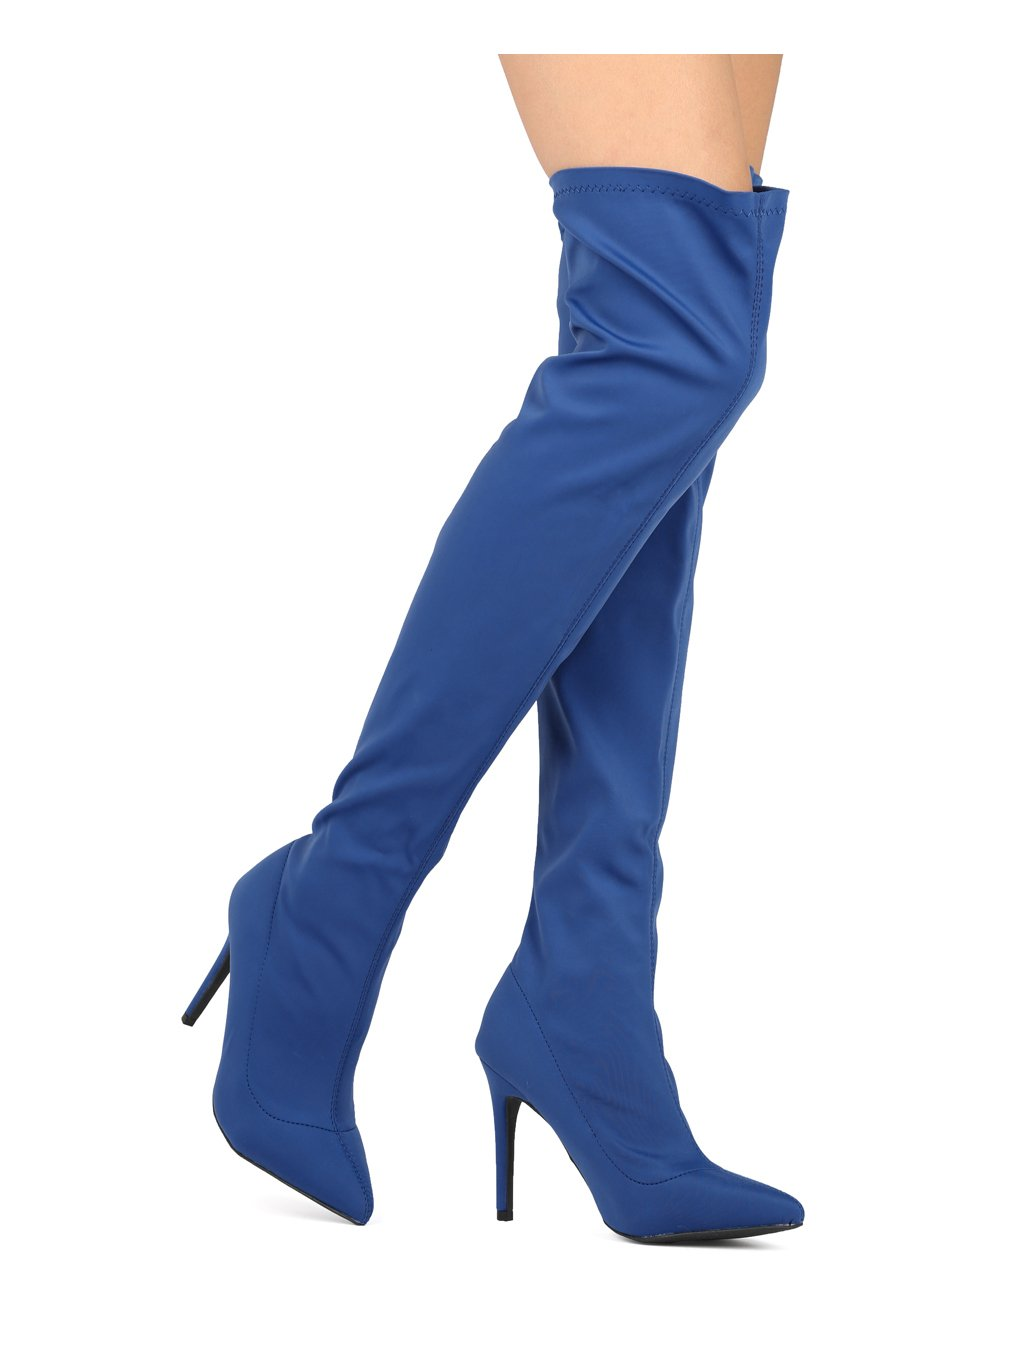 Alrisco Women Stretch Over The Knee Pointy Toe Stiletto Boot HF00 - Blue Lycra (Size: 9.0) by Alrisco